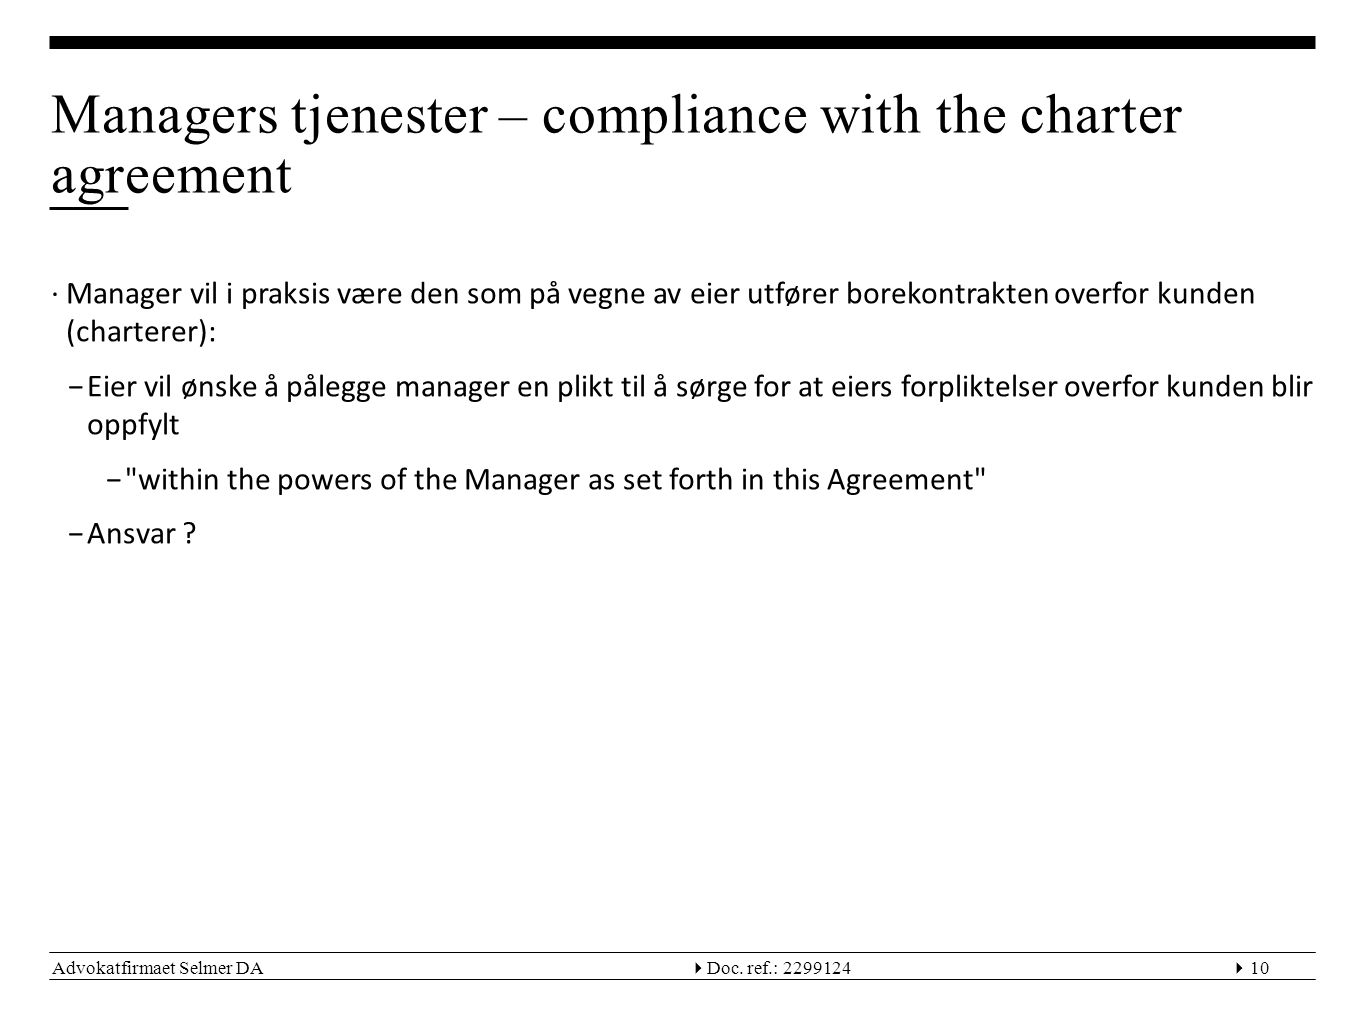 Managers tjenester – compliance with the charter agreement